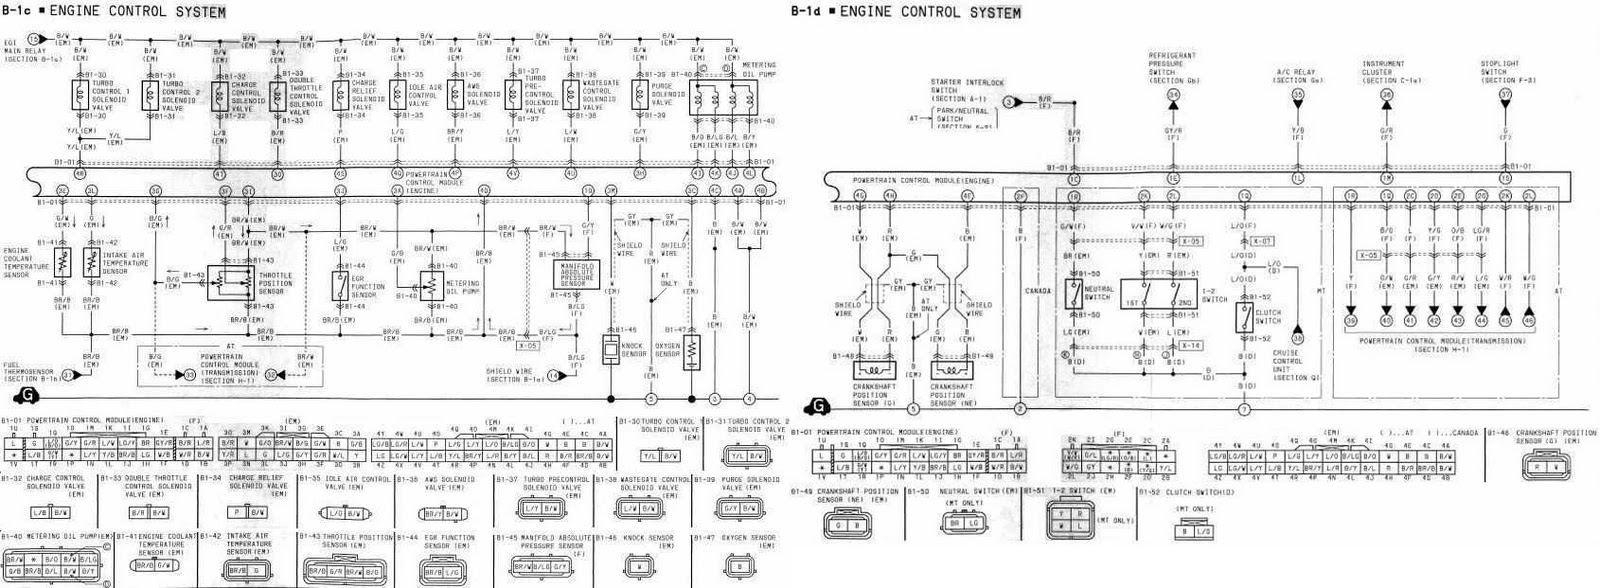 2011 All About Wiring Diagrams 1993 Mazda Rx 7 Schematic 1994 Engine Control System Complete Diagram